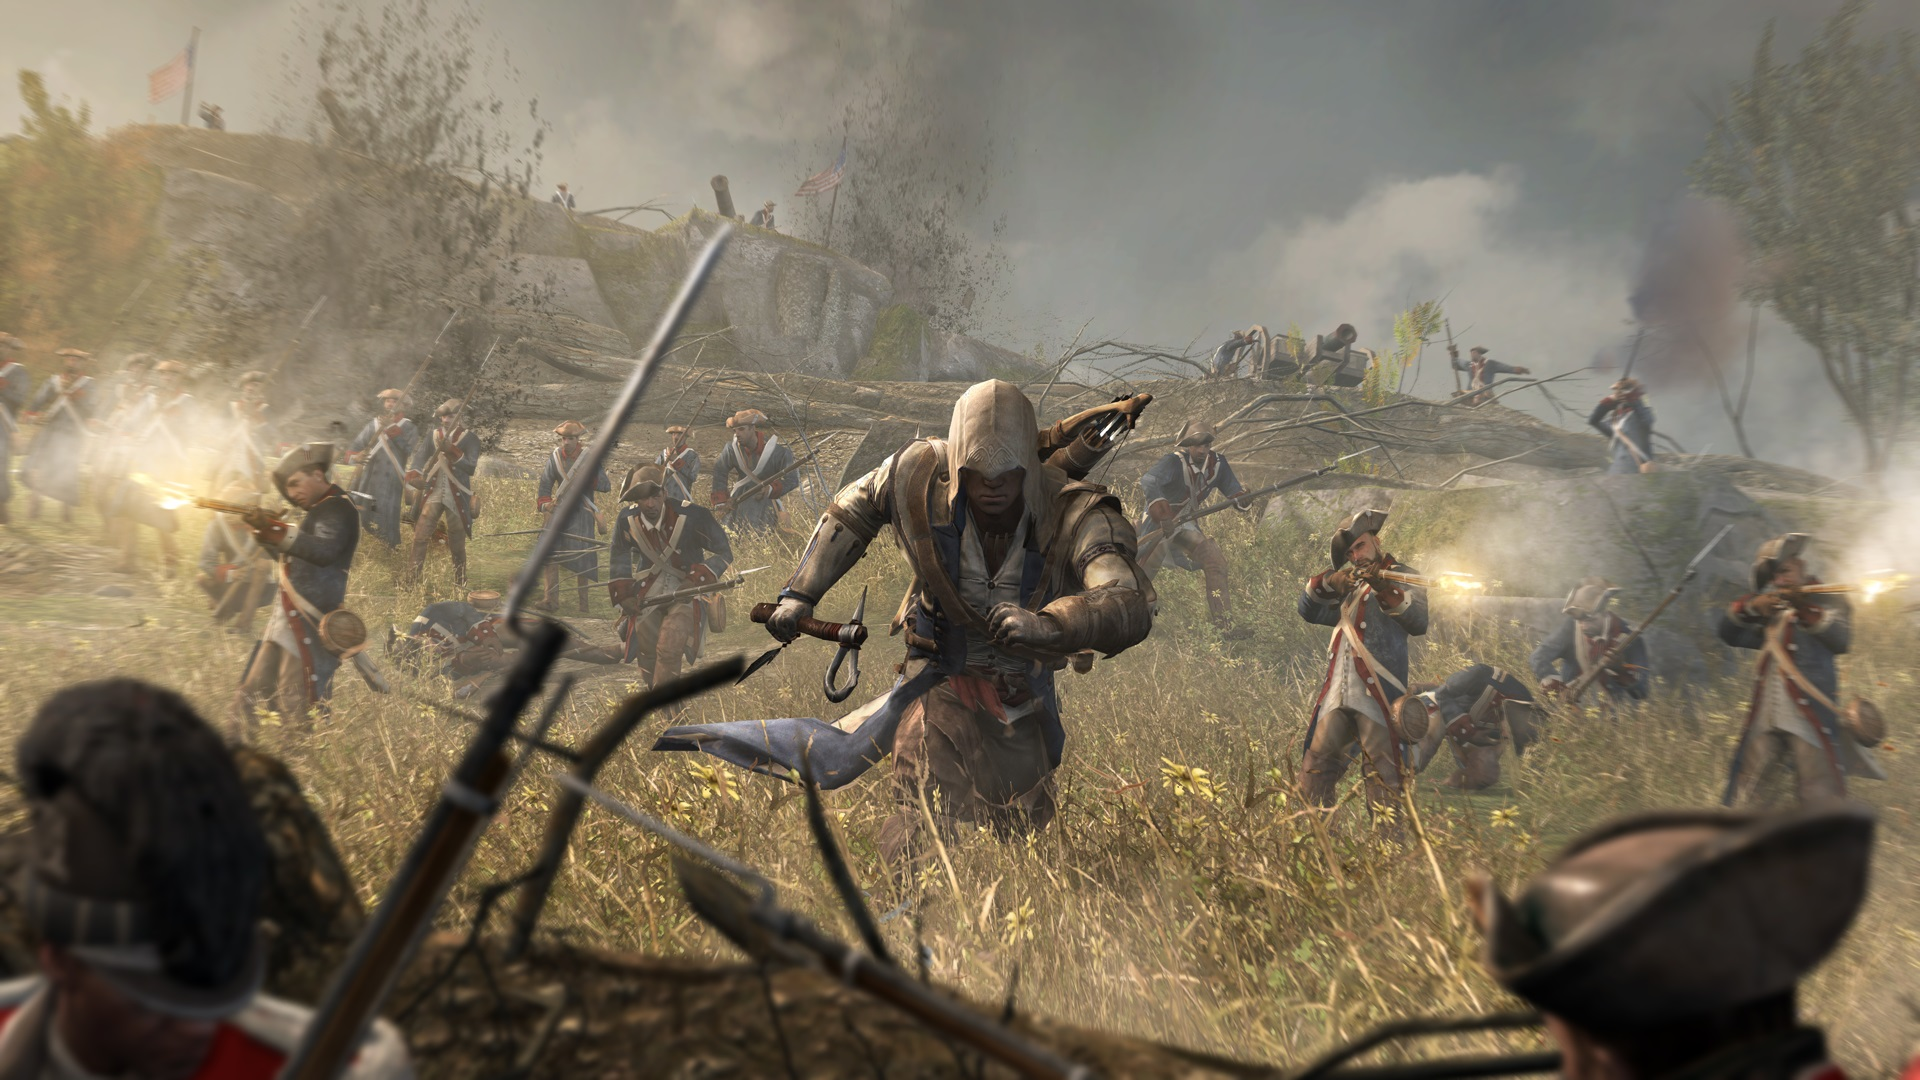 Is Assassin's Creed 3 That Bad? Flashback Review | USgamer